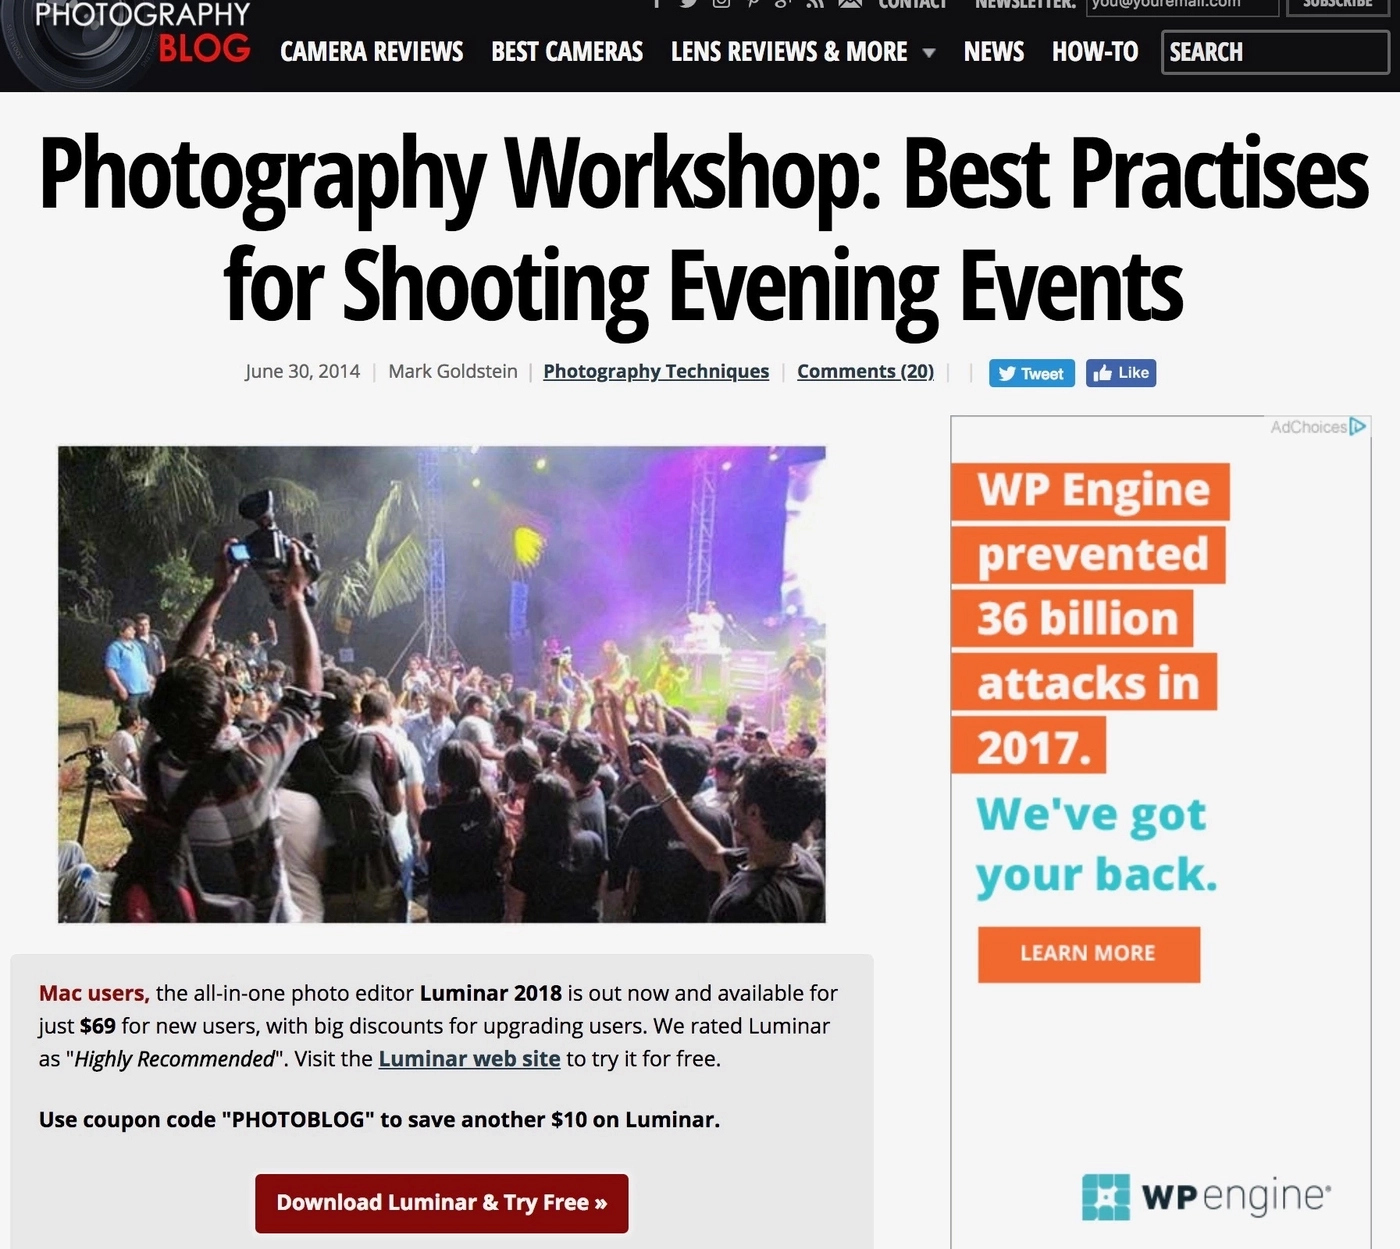 Photography blog eCommerce practice